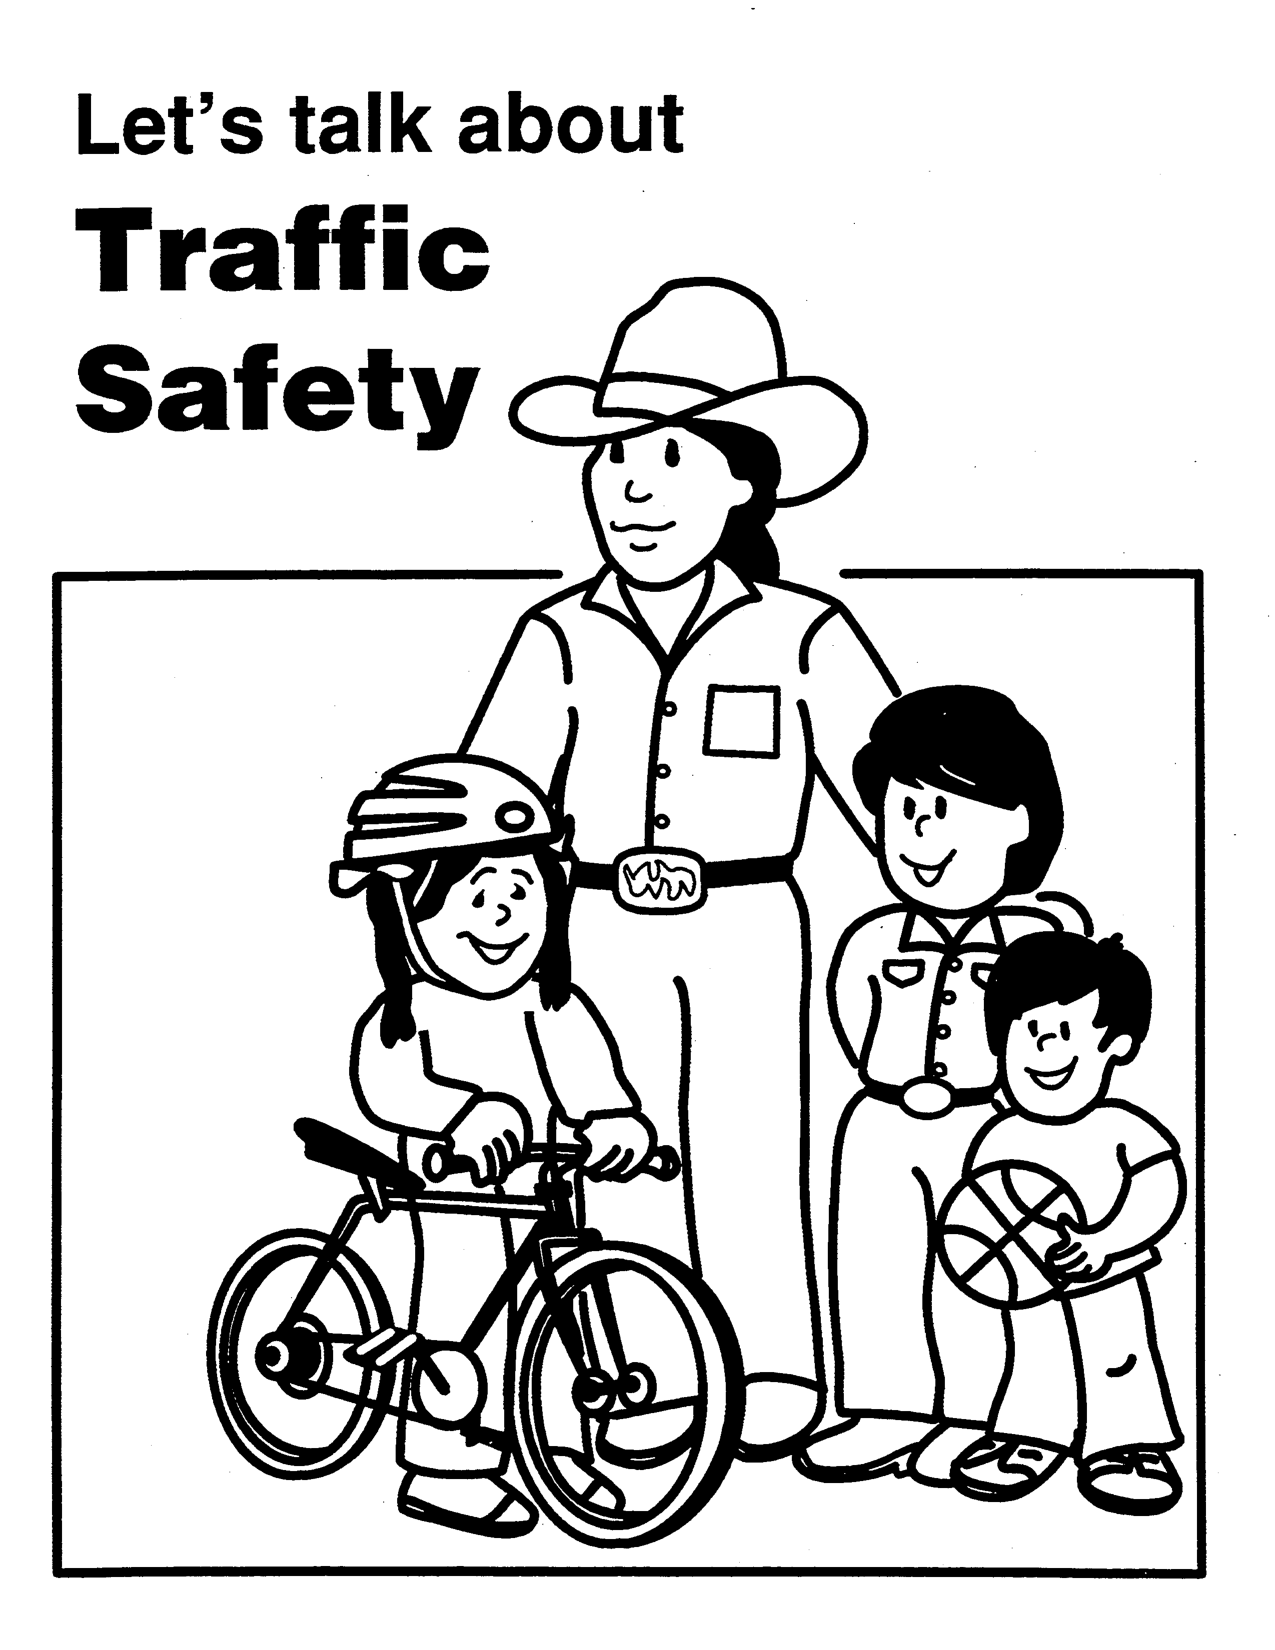 caution sign coloring page safety coloring printable for kids look both ways before coloring sign page caution